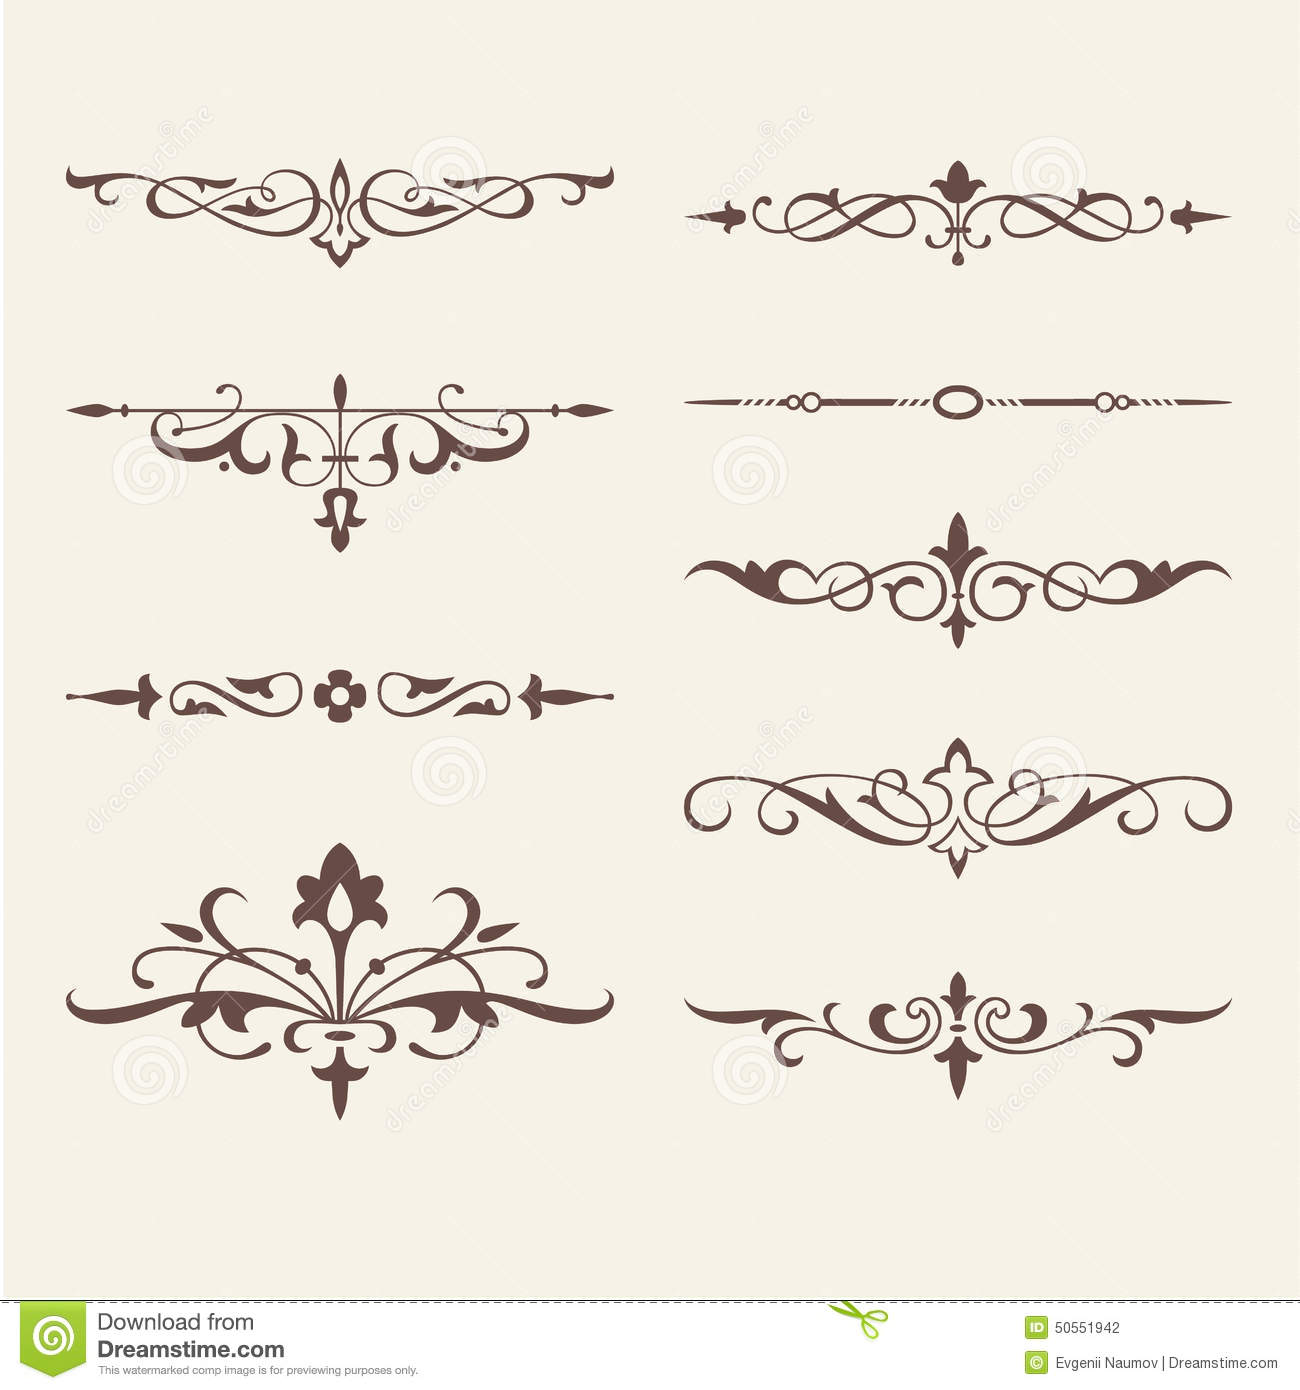 Curled Calligraphic Design Elements For Logo Stock Vector